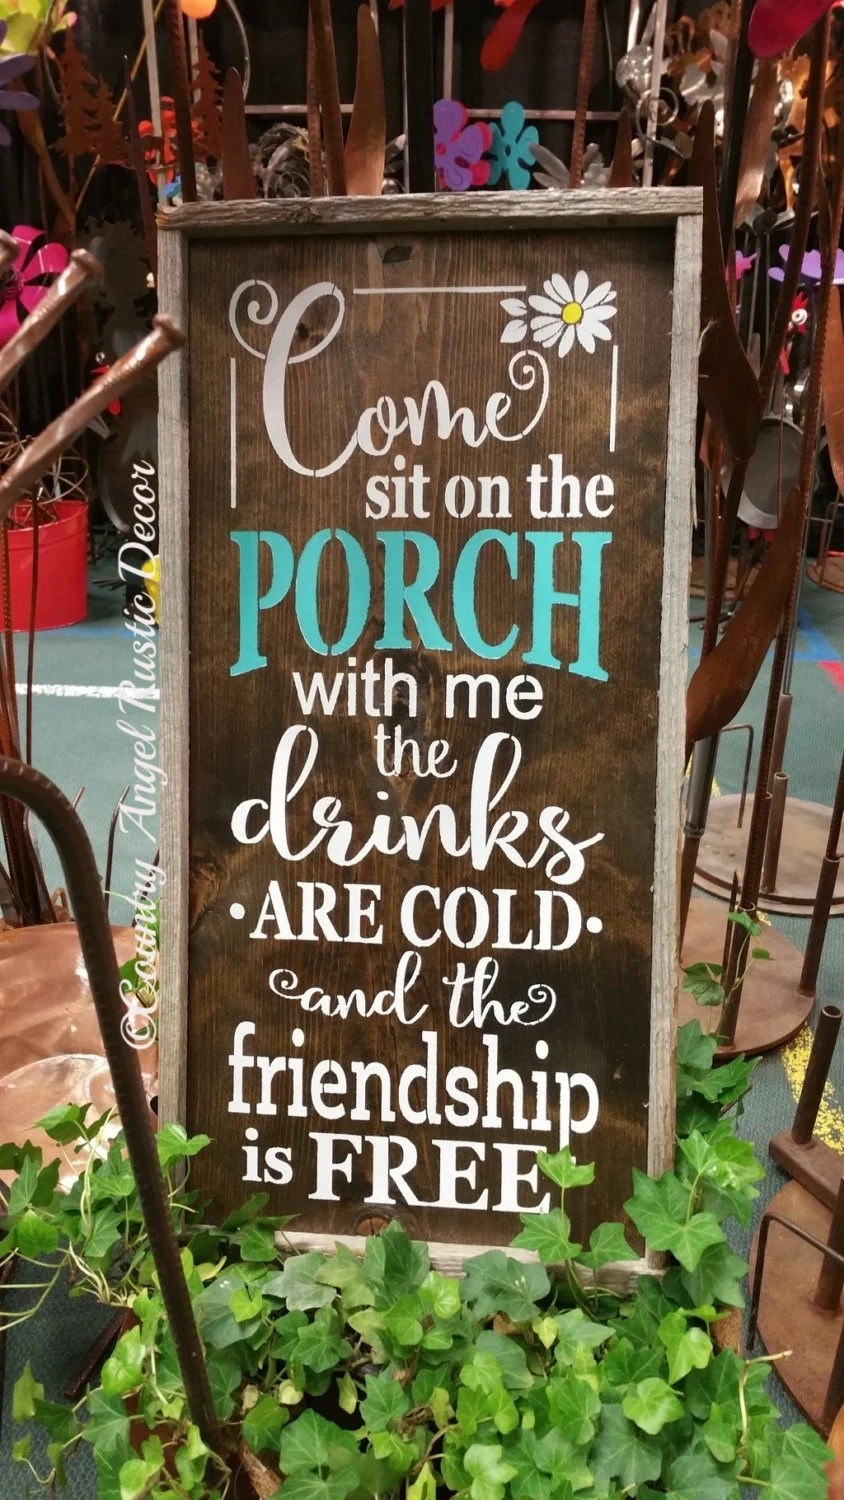 Come sit on the Porch with meRustic PORCH